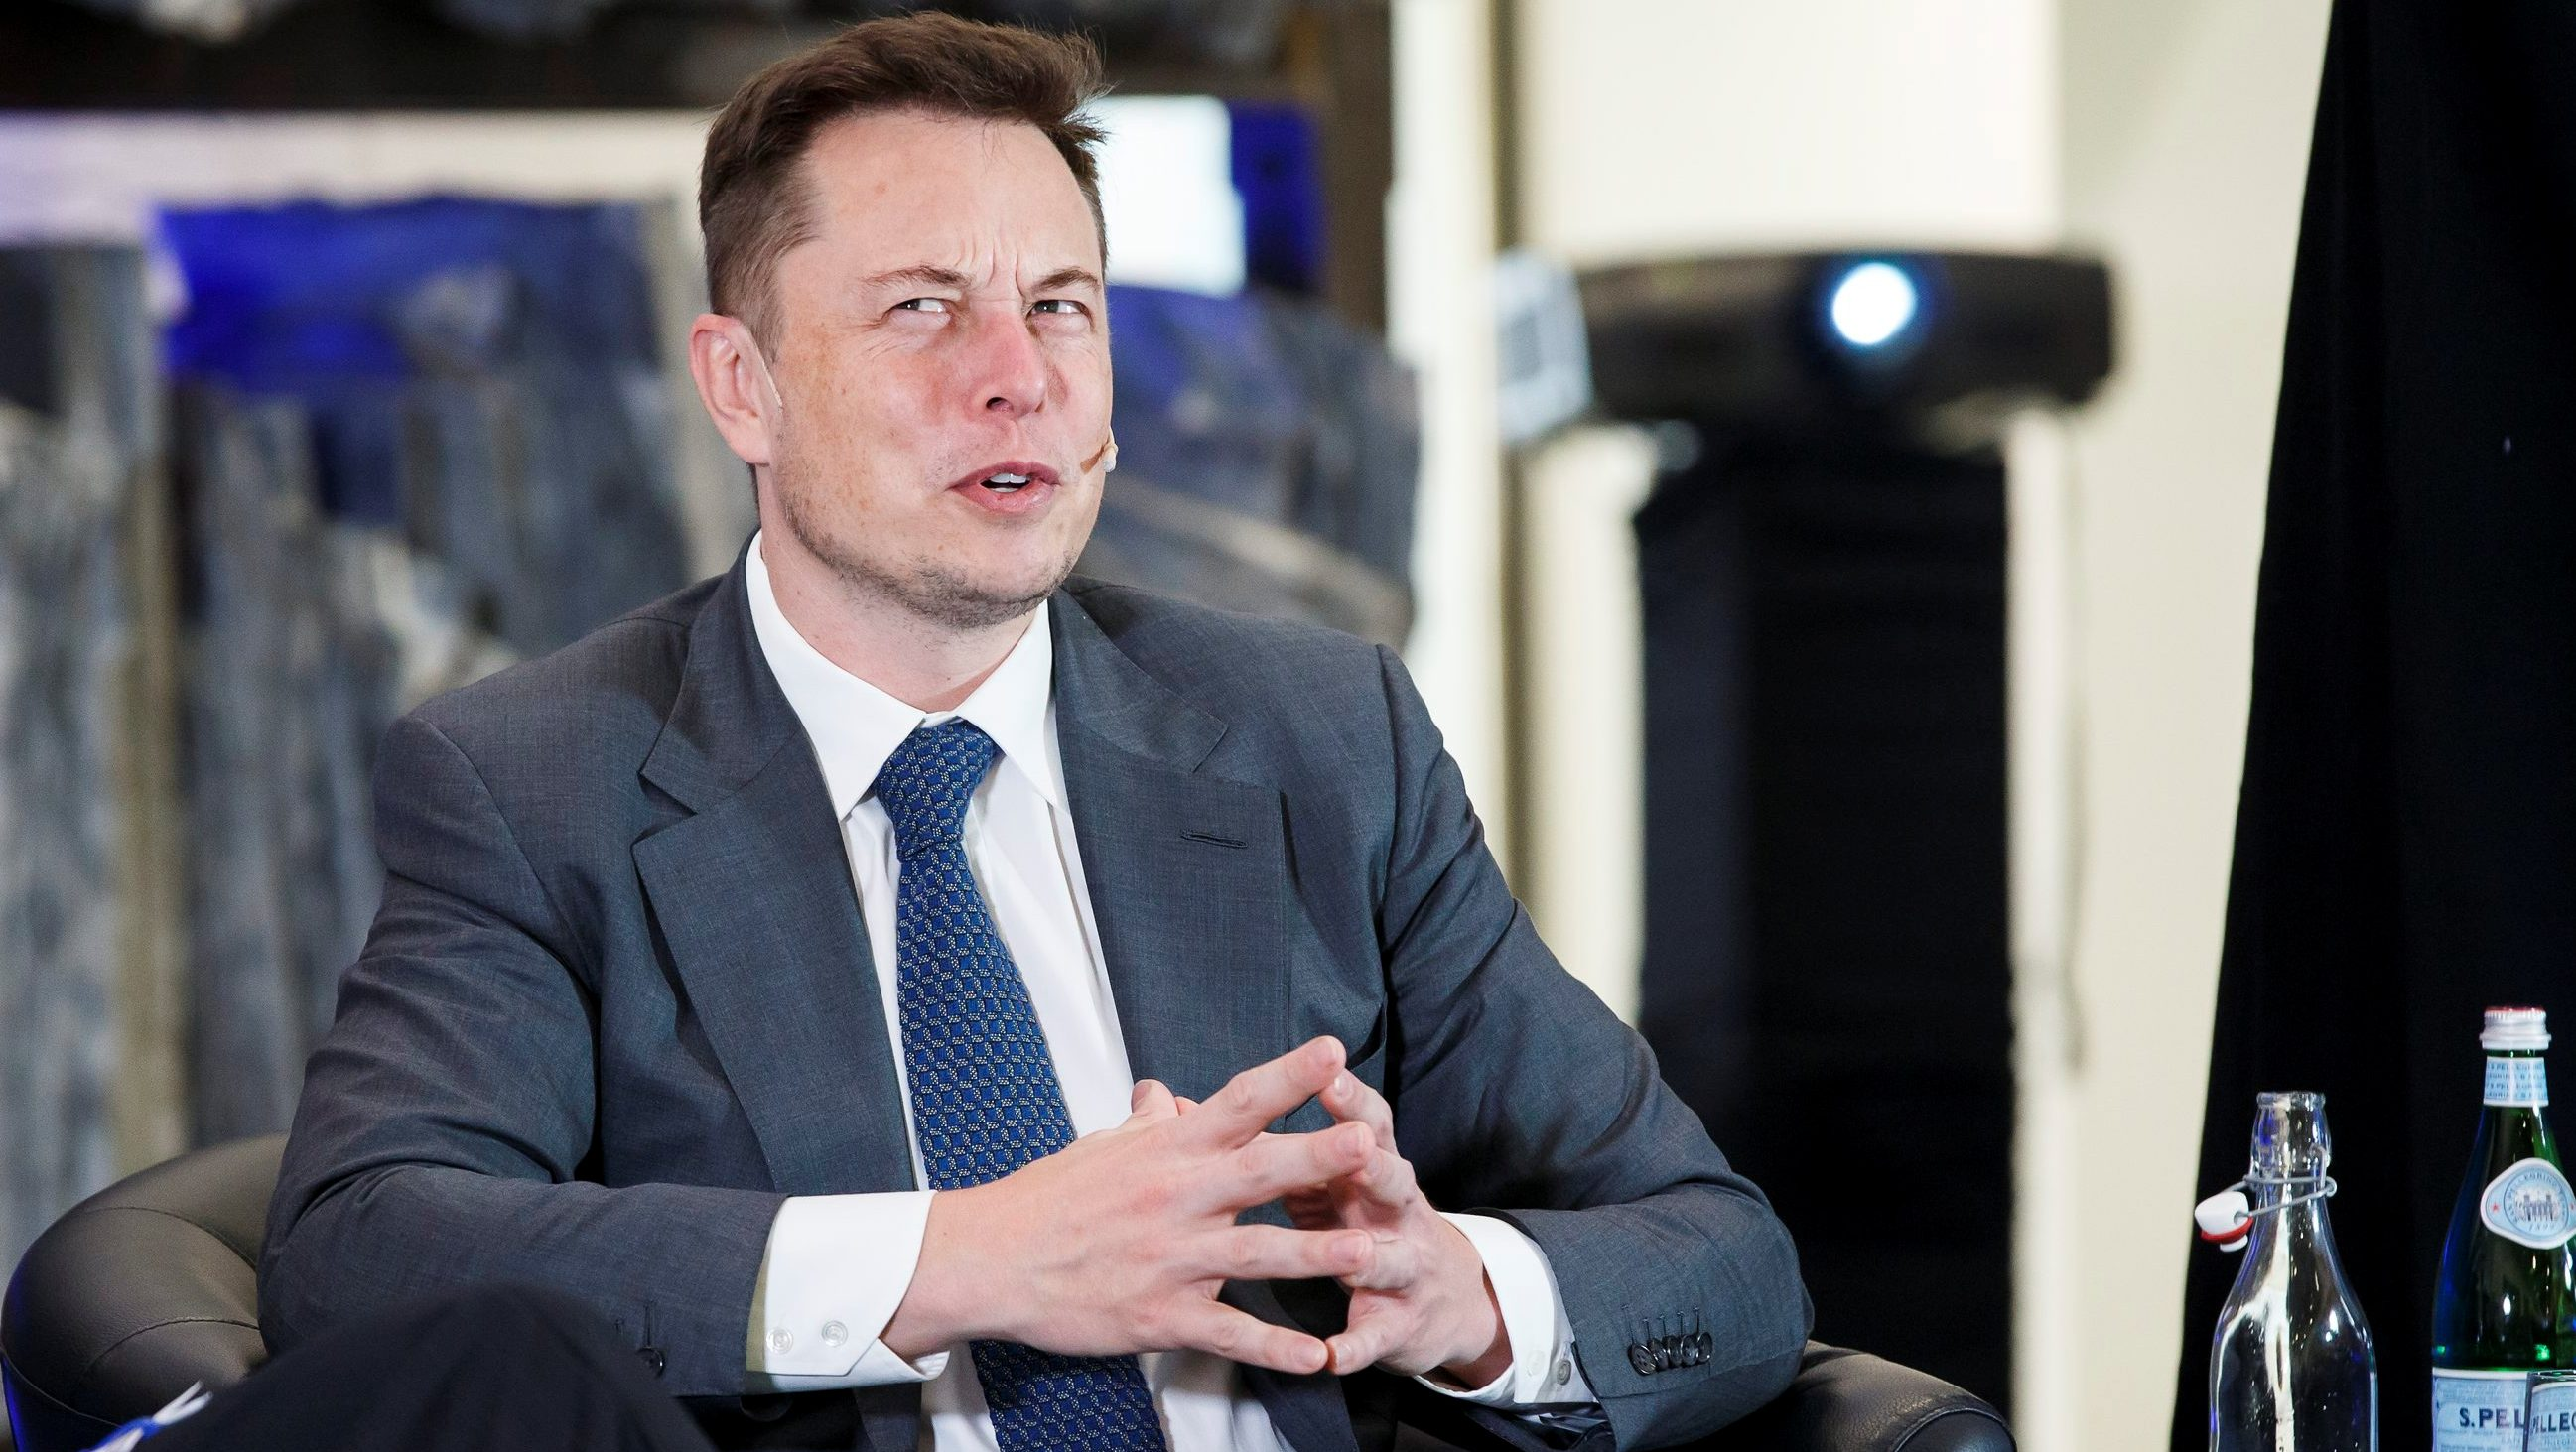 CEO of Tesla Motors Elon Musk attends an environmental conference at Astrup Fearnley Museum in Oslo, Norway April 21, 2016. NTB Scanpix/Heiko Junge/via REUTERS ATTENTION EDITORS - THIS IMAGE WAS PROVIDED BY A THIRD PARTY. FOR EDITORIAL USE ONLY. NORWAY OUT. NO COMMERCIAL OR EDITORIAL SALES IN NORWAY. NO COMMERCIAL SALES. - RTX2B1W3